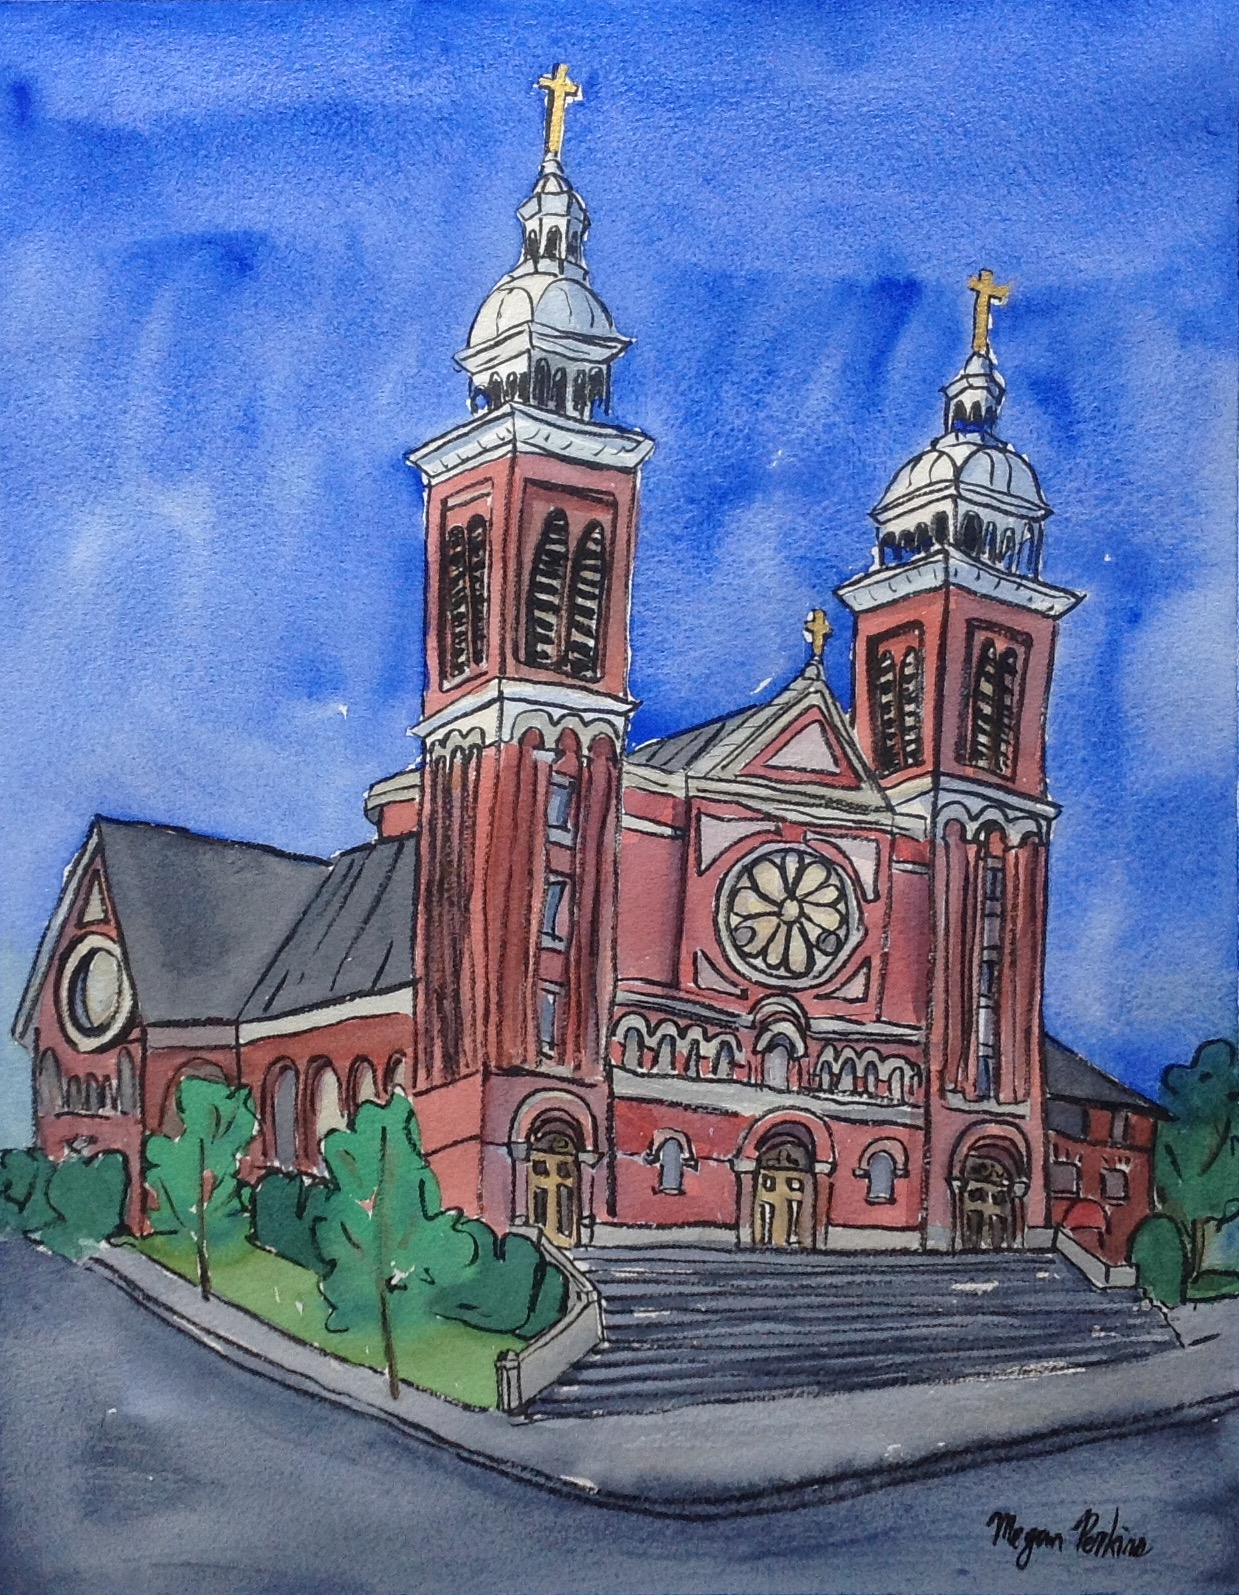 """I'd describe the brick that makes up the Cathedral as """"salmon,"""" though """"pink"""" works just as well! I am constantly astounded by the range of colors in the brick buildings I find all over town. Brown, orange, burnt siena, umber, pink, salmon, cream, ochre and more!"""